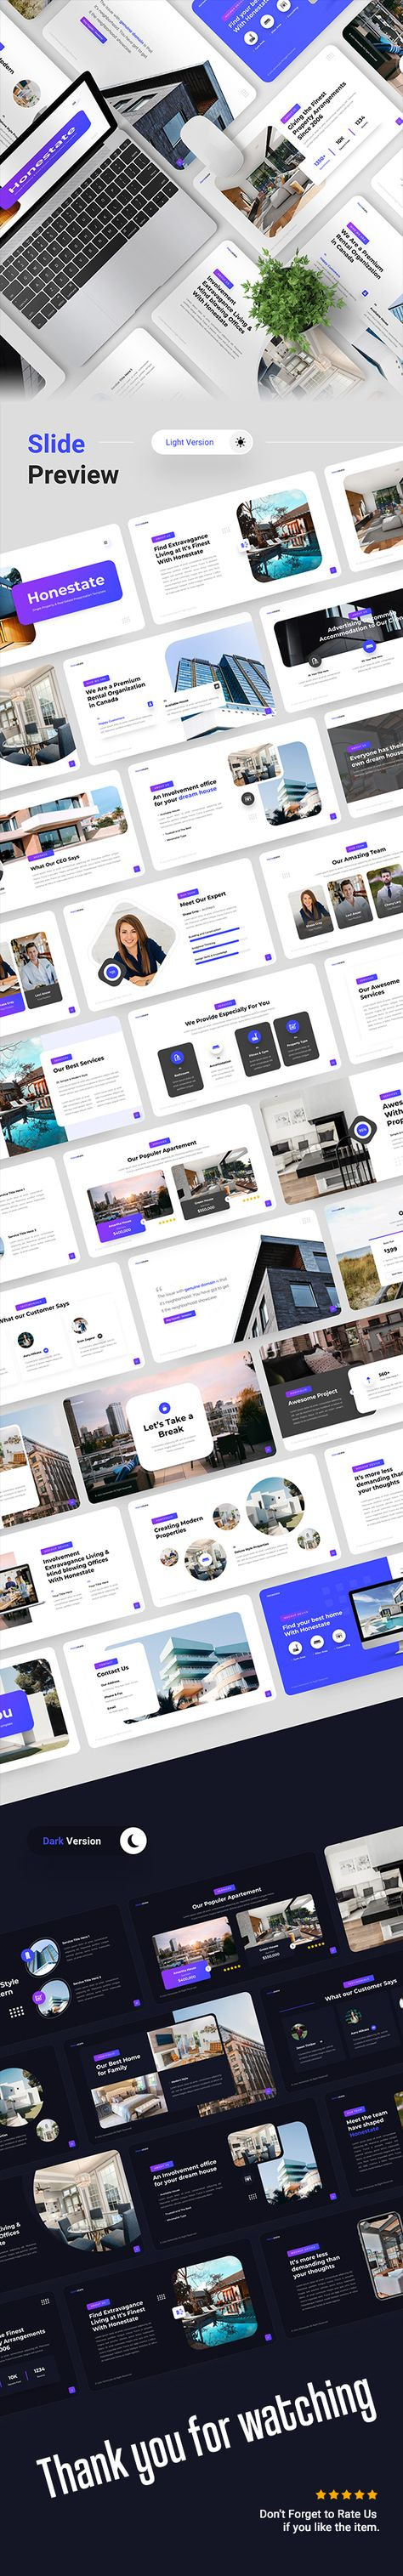 Honestate - Single Property & Real Estate Keynote Template